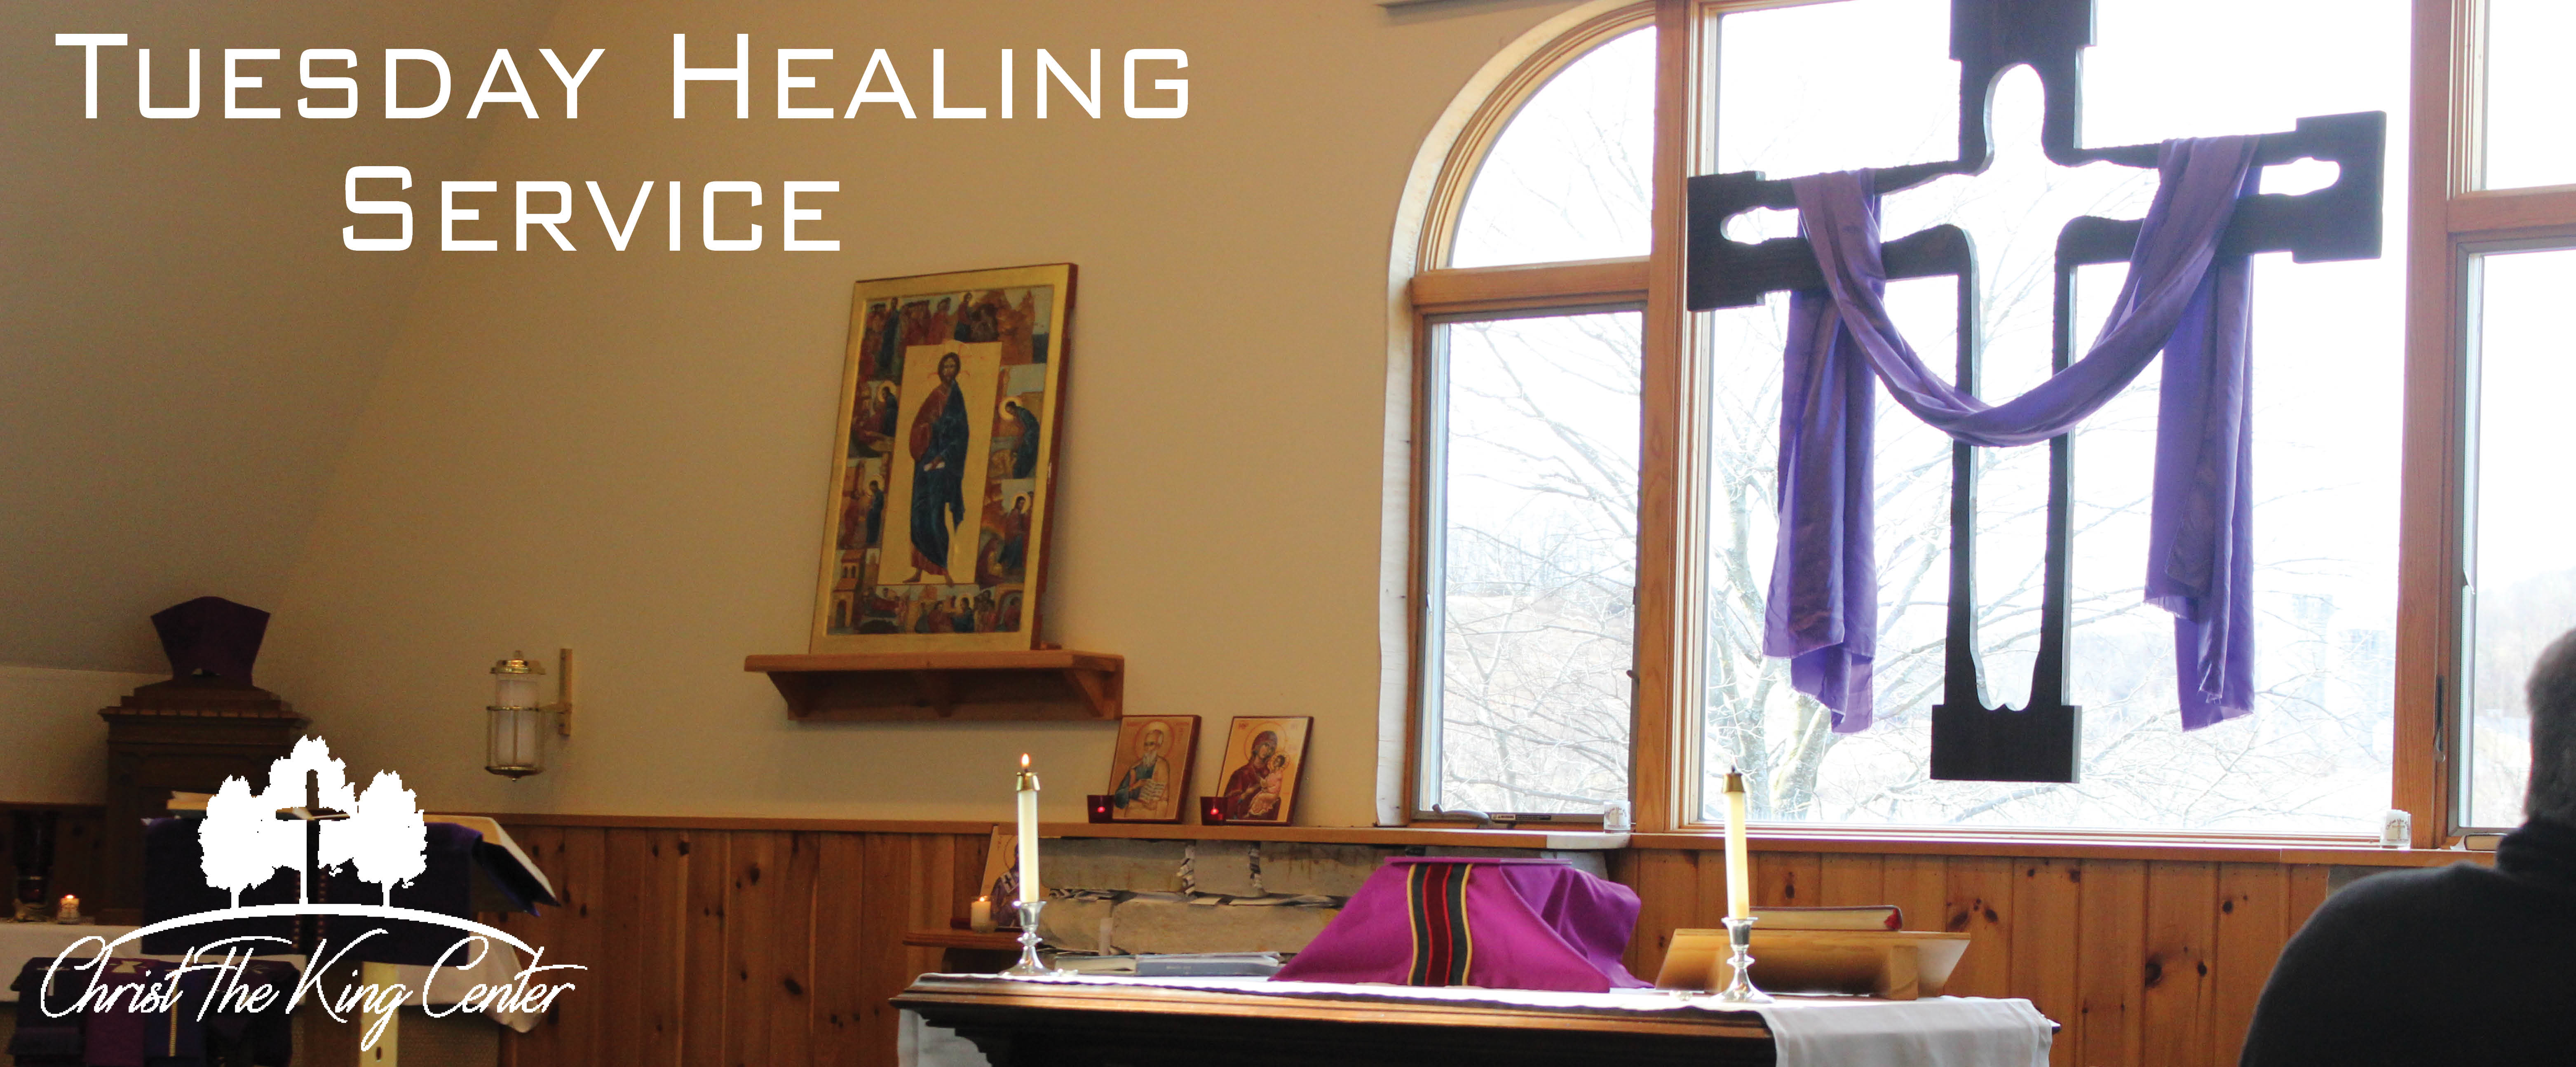 Tuesday Healing Service Banner